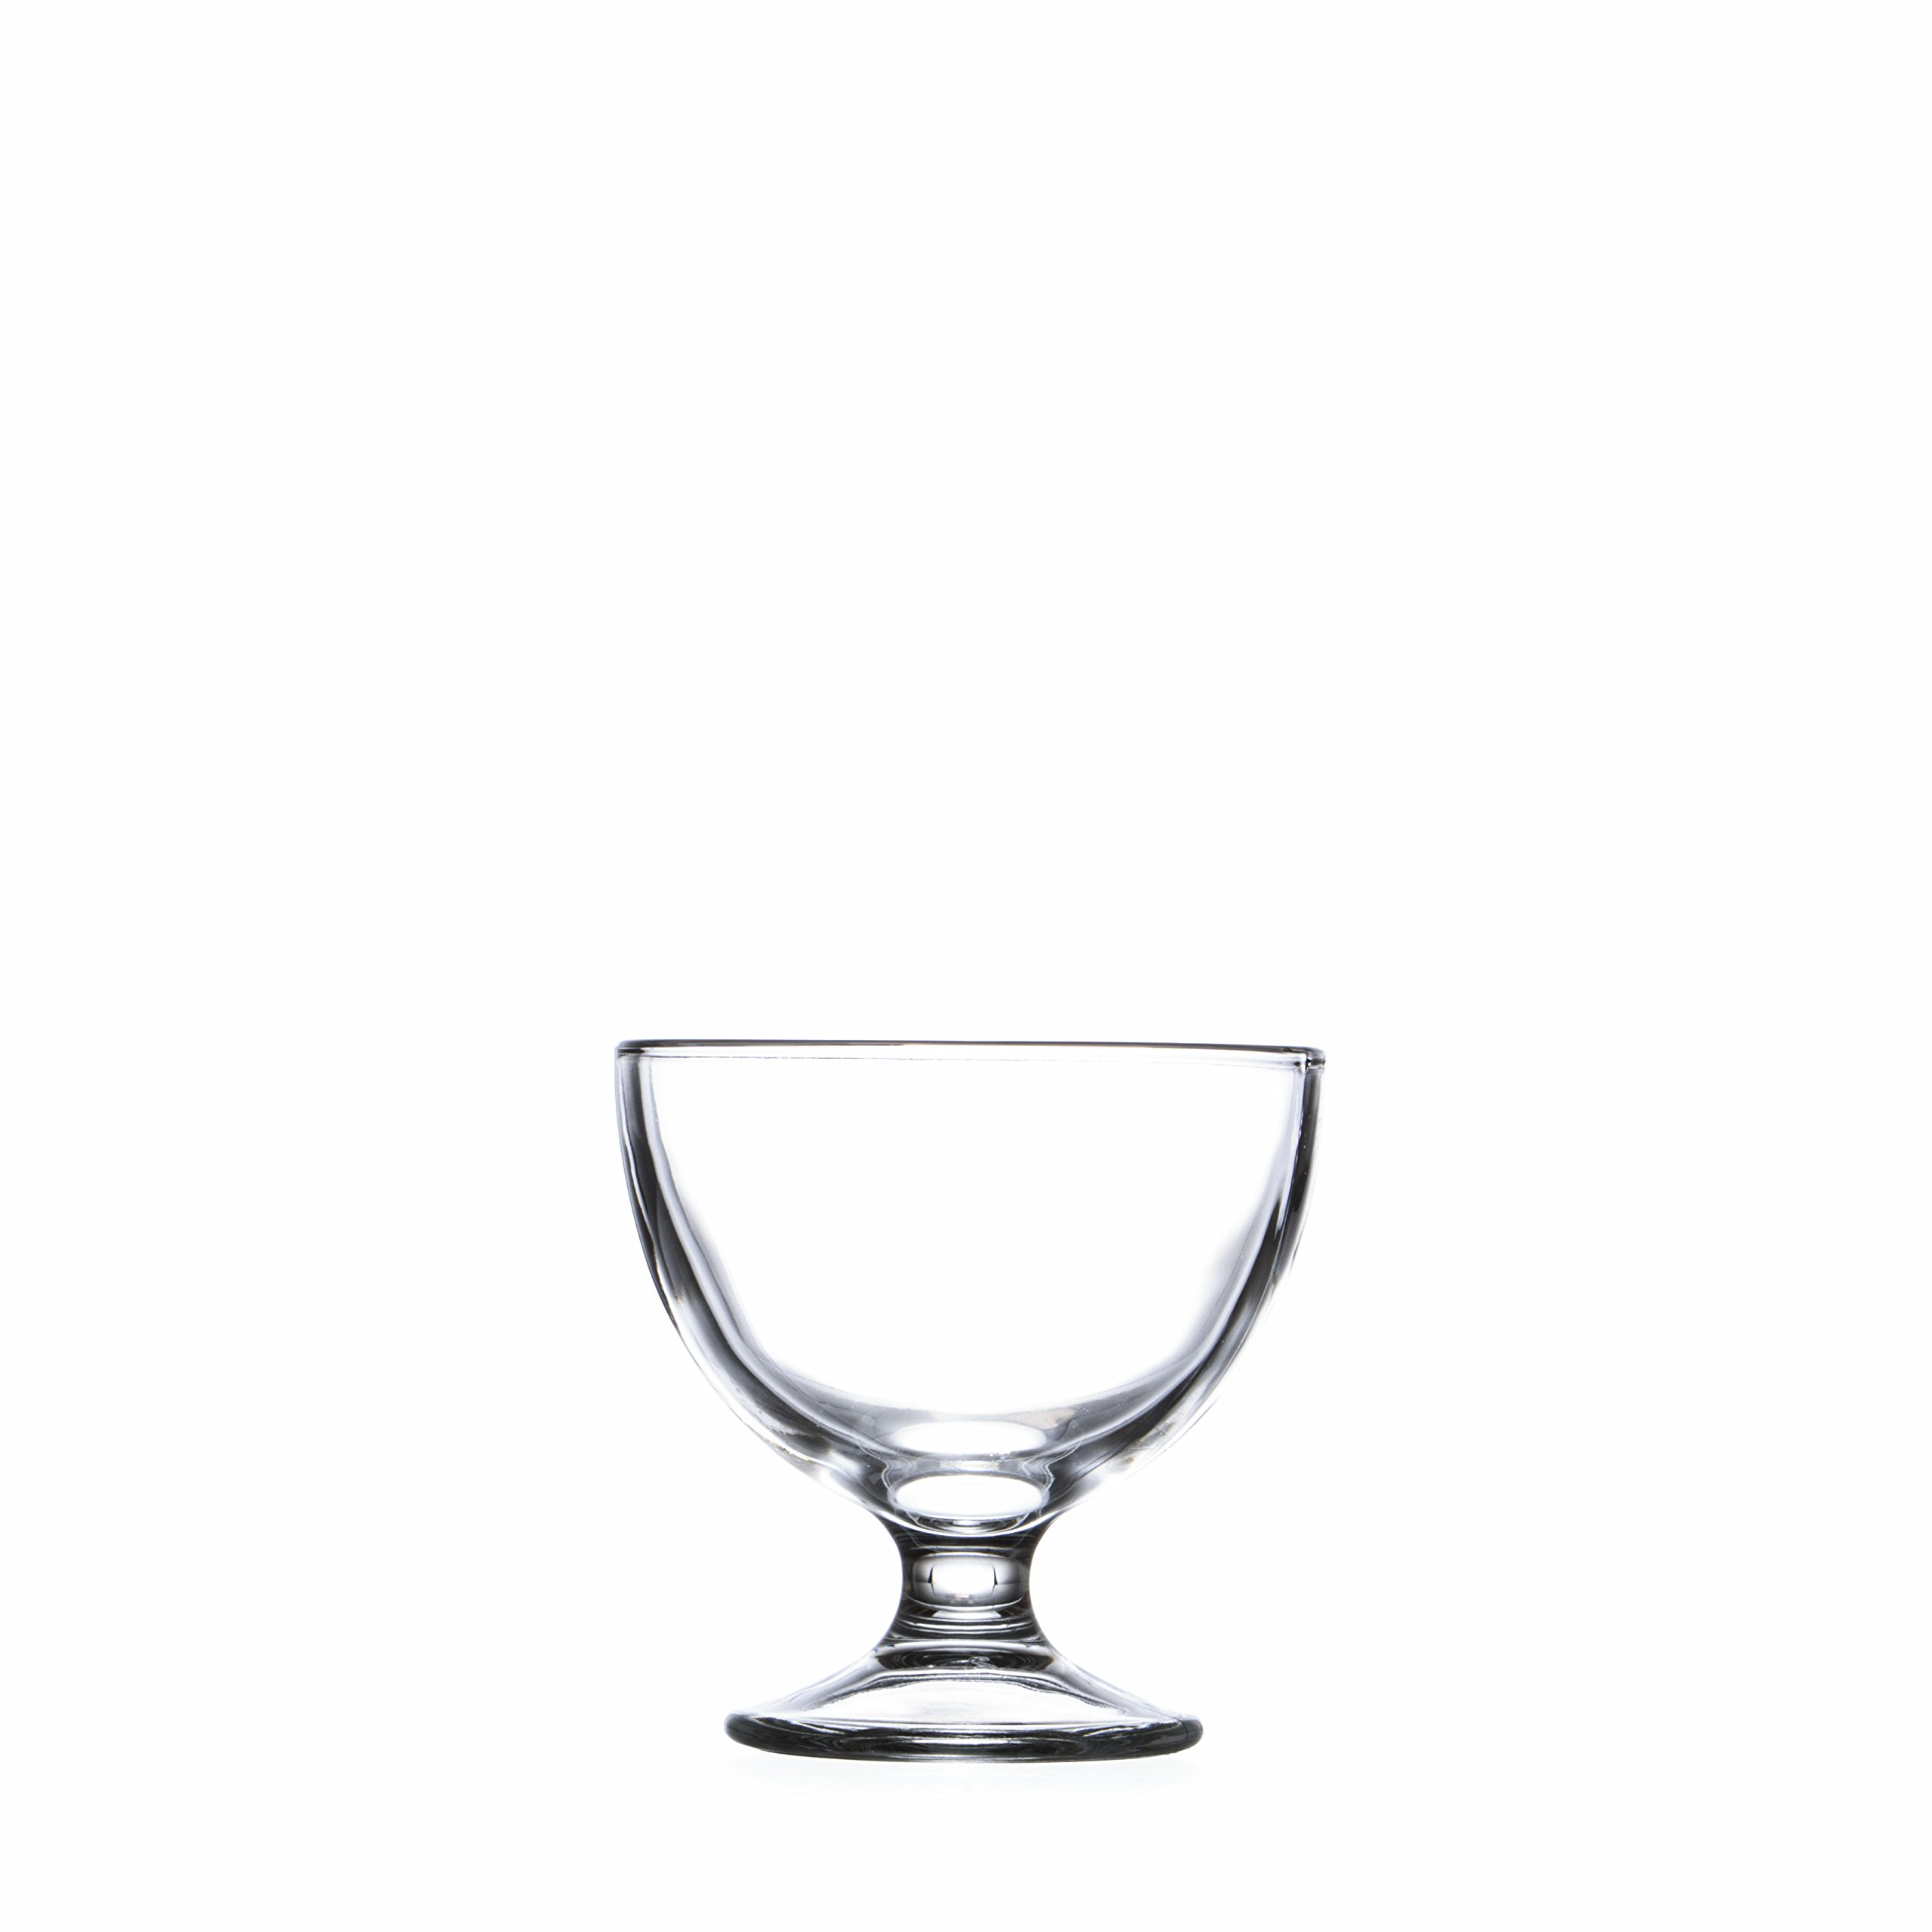 Smart And Cozy Ice Cream Dessert Bowls 10.3 oz./310 ml, Sherbet Glass Bowls, Cream&Berry Dishes, Clear Glass, Set of 4-12 piece (6) by Smart And Cozy (Image #1)